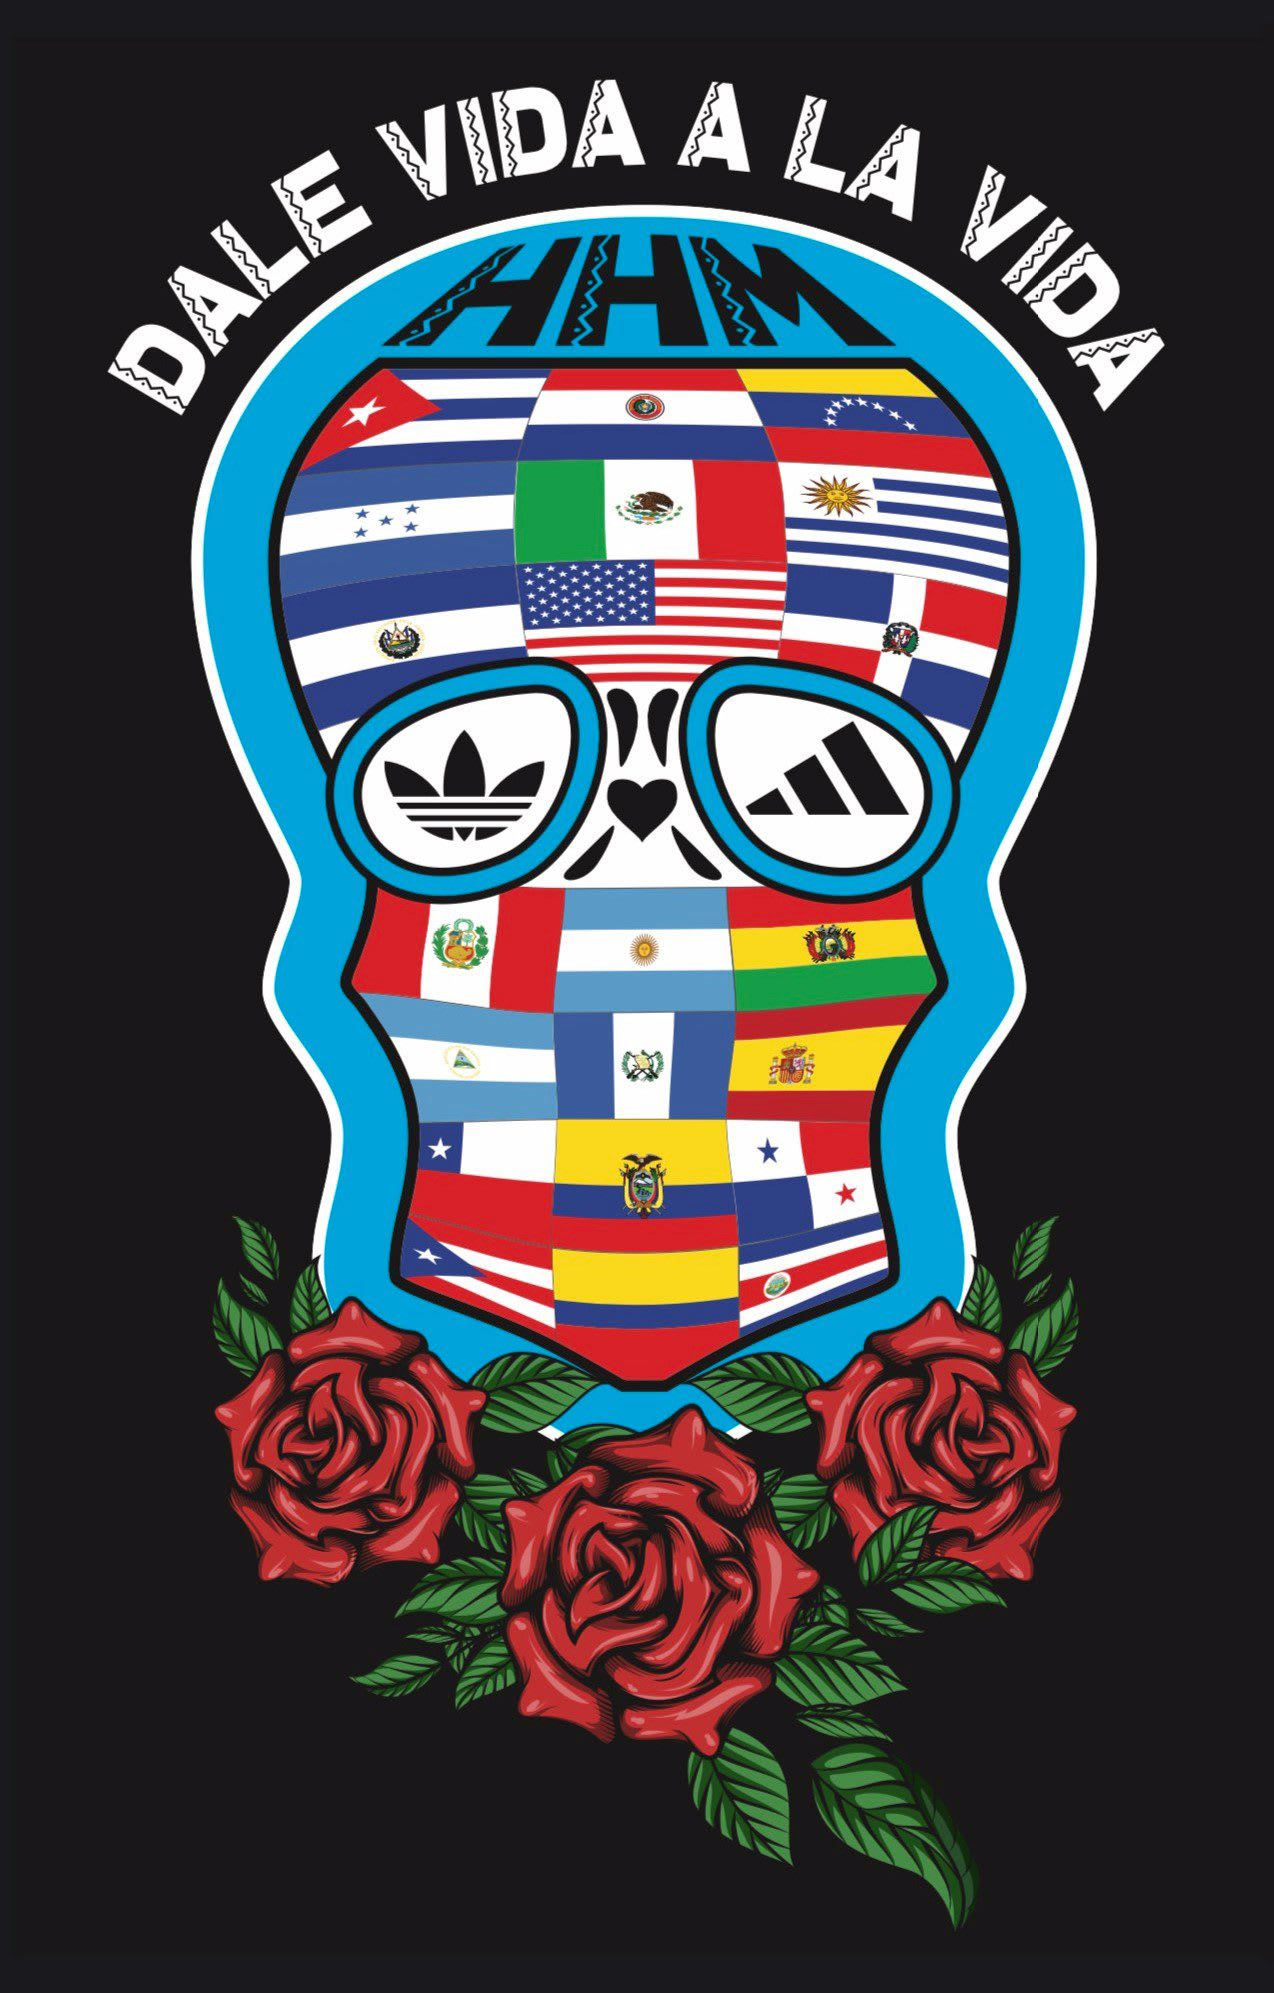 Skill made of different flags from different countries, Eddy Zamora, adidas, designer, employee, creativity, design